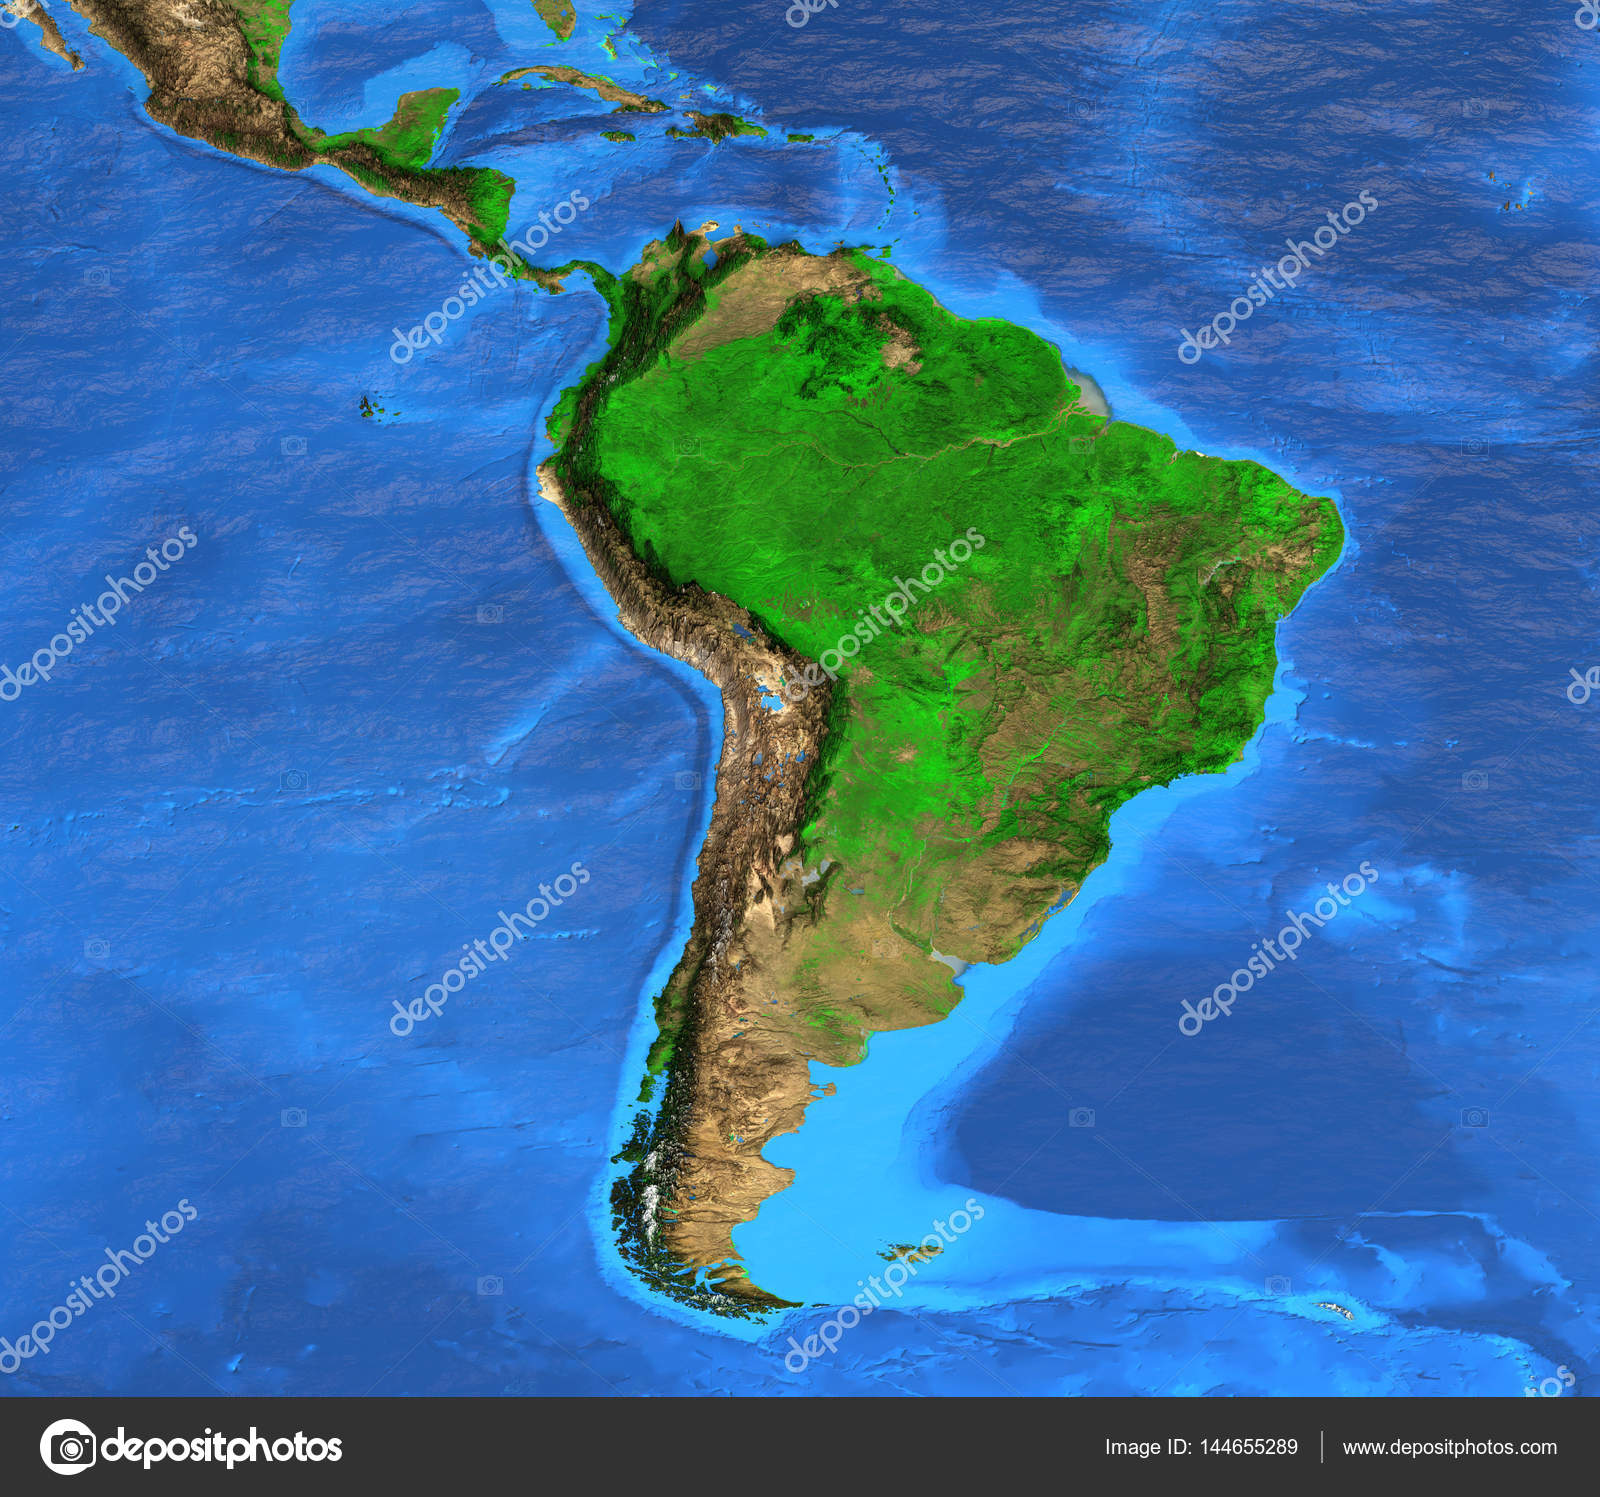 High resolution world map focused on south america fotos de stock high resolution world map focused on south america fotos de stock gumiabroncs Images